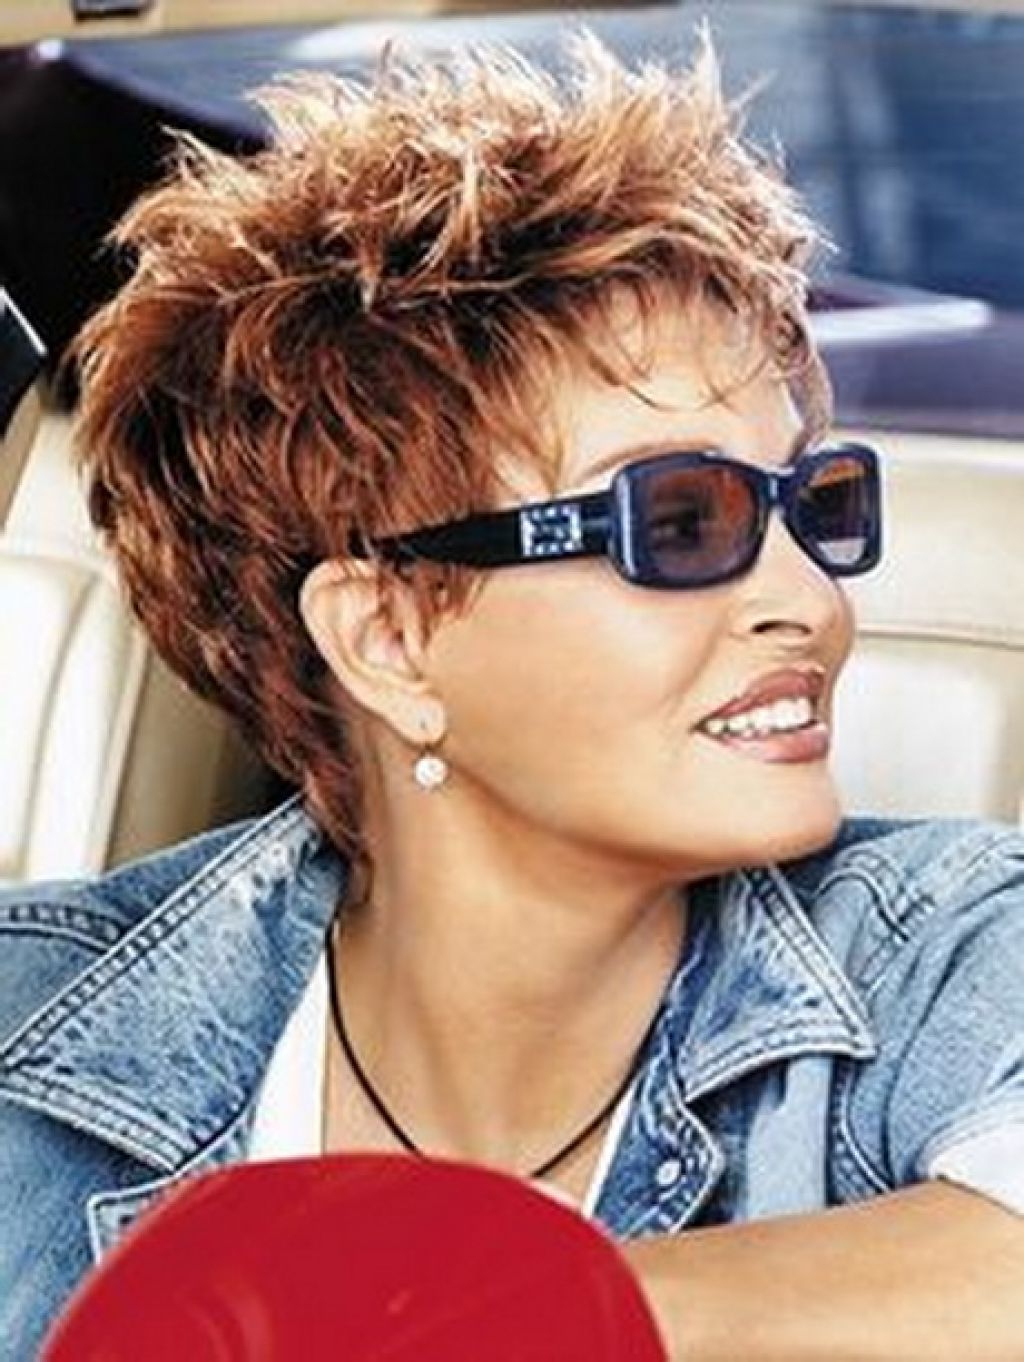 ? 24+ Nice Hairstyles For Women With Glasses: Trendy Short With Trendy Short Hairstyles (View 14 of 25)